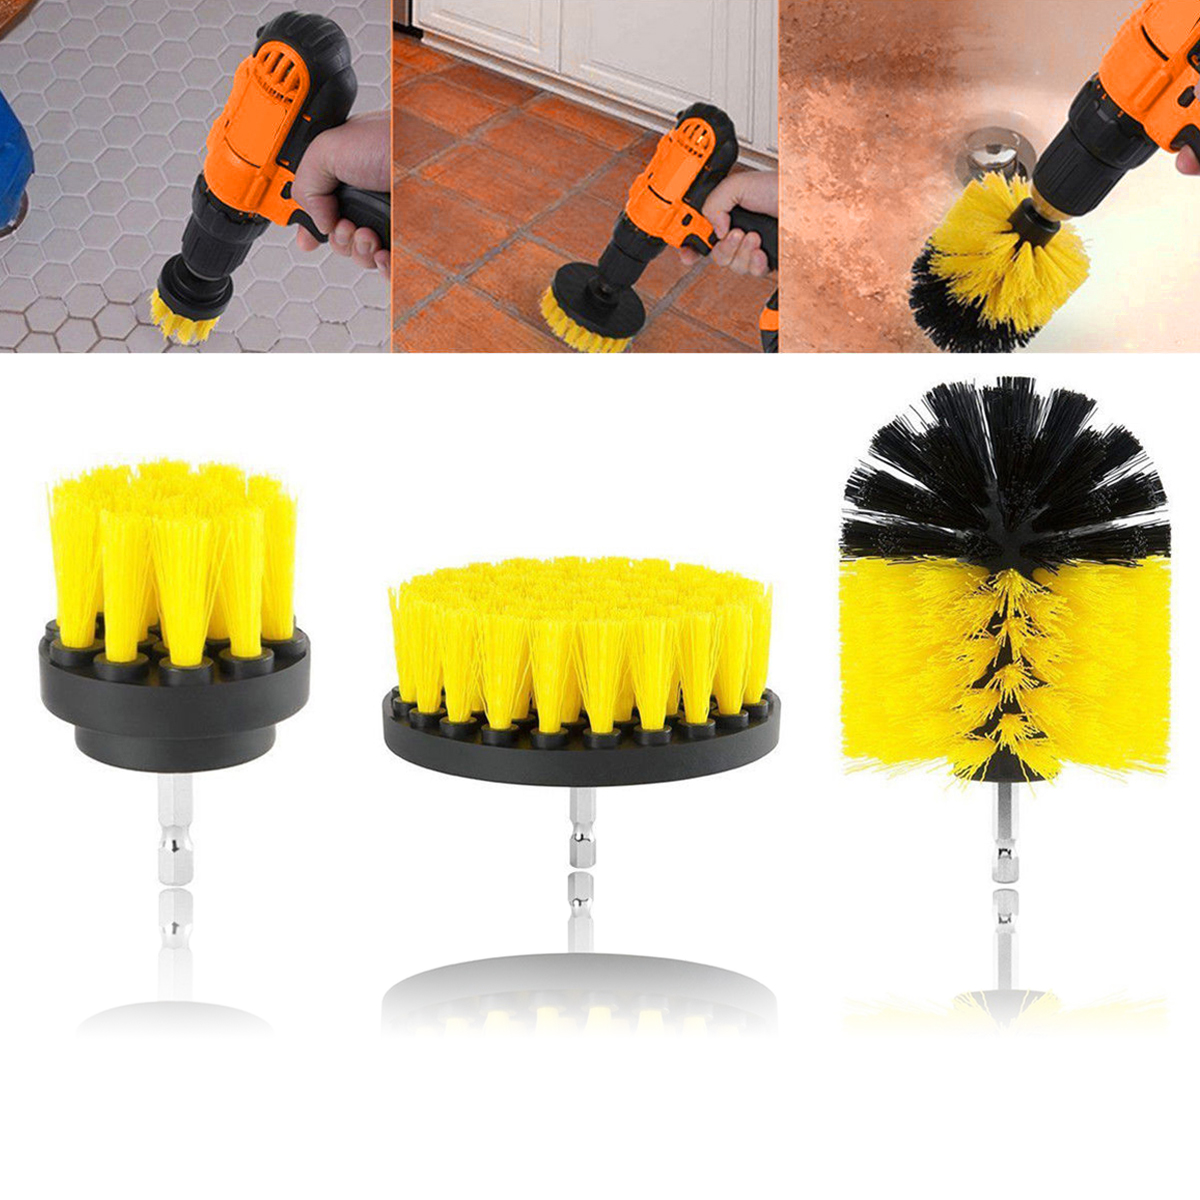 3 yellow Tile Grout Power Scrubber Cleaning Drill Brush Set Tub Cleaner Combo Household Cleaning Tools Brushes Bathroom Floor